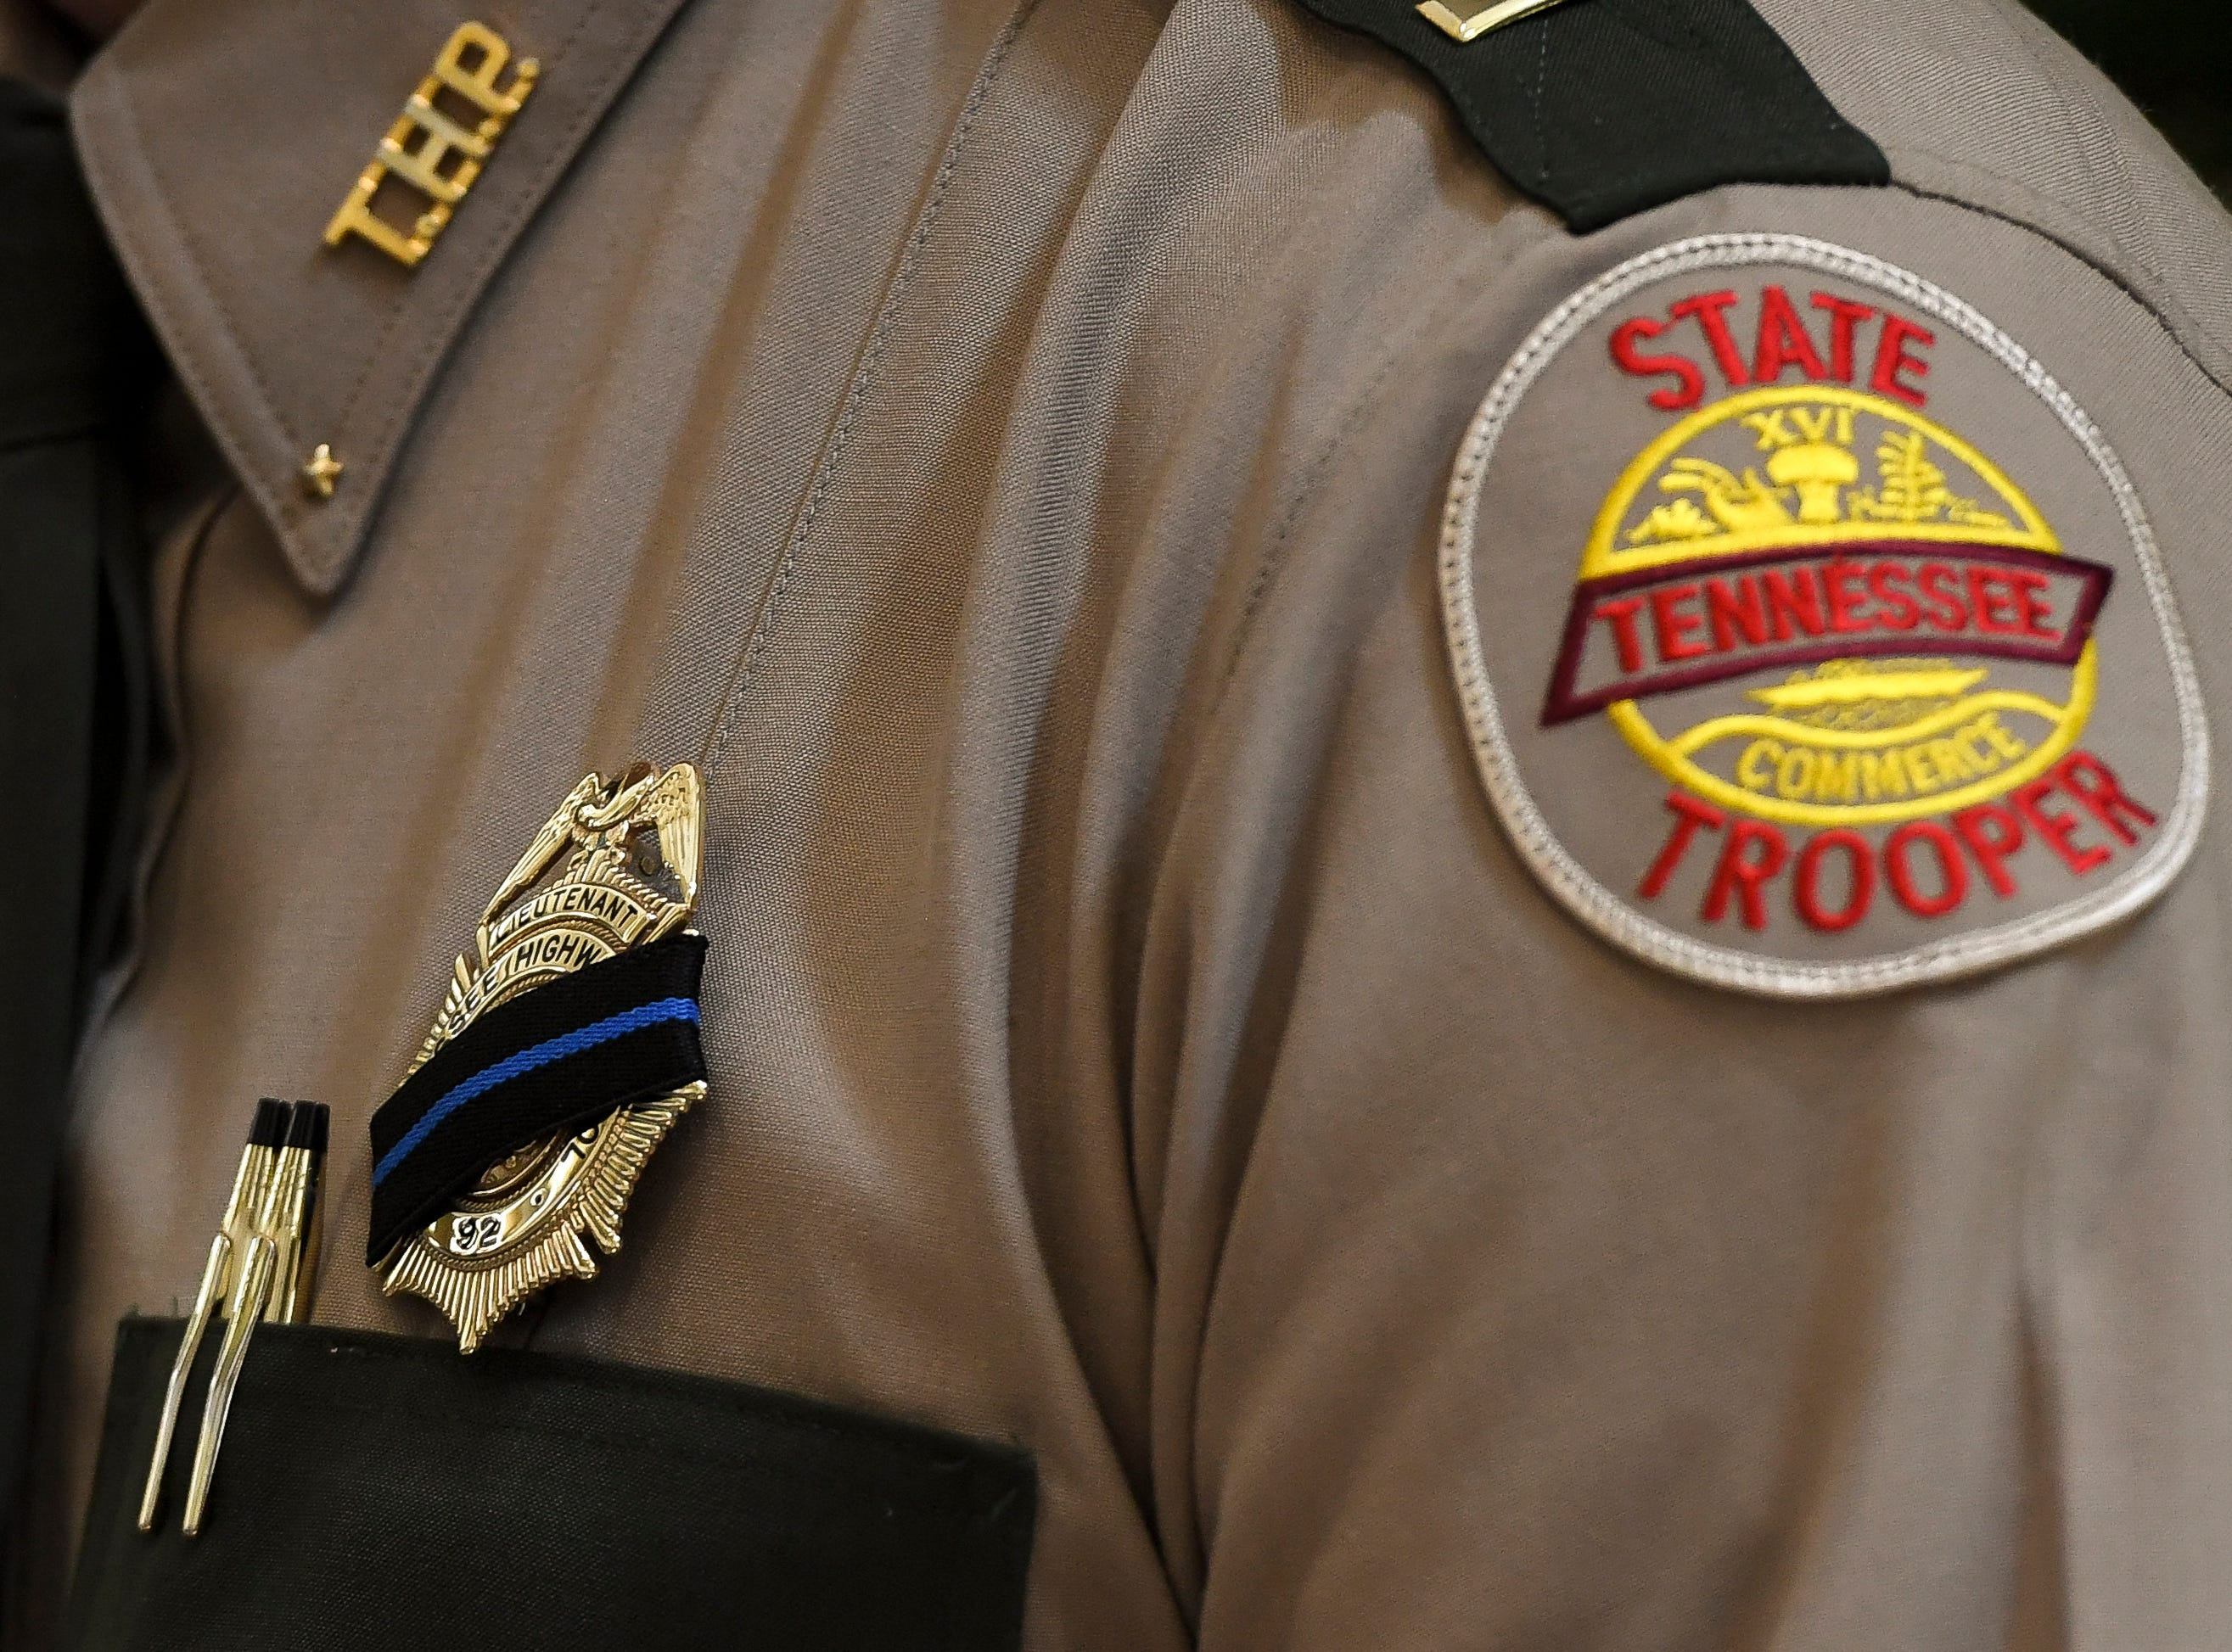 A Tennessee State Trooper wears a mourning band on his badge before the funeral service for Tennessee State Trooper Matthew Gatti at West Jackson Baptist Church in Jackson, Tenn., Monday, May 13, 2019. Gatti died in the line of duty in an accident while responding to a car fire on I-40 in Madison County on May 6.